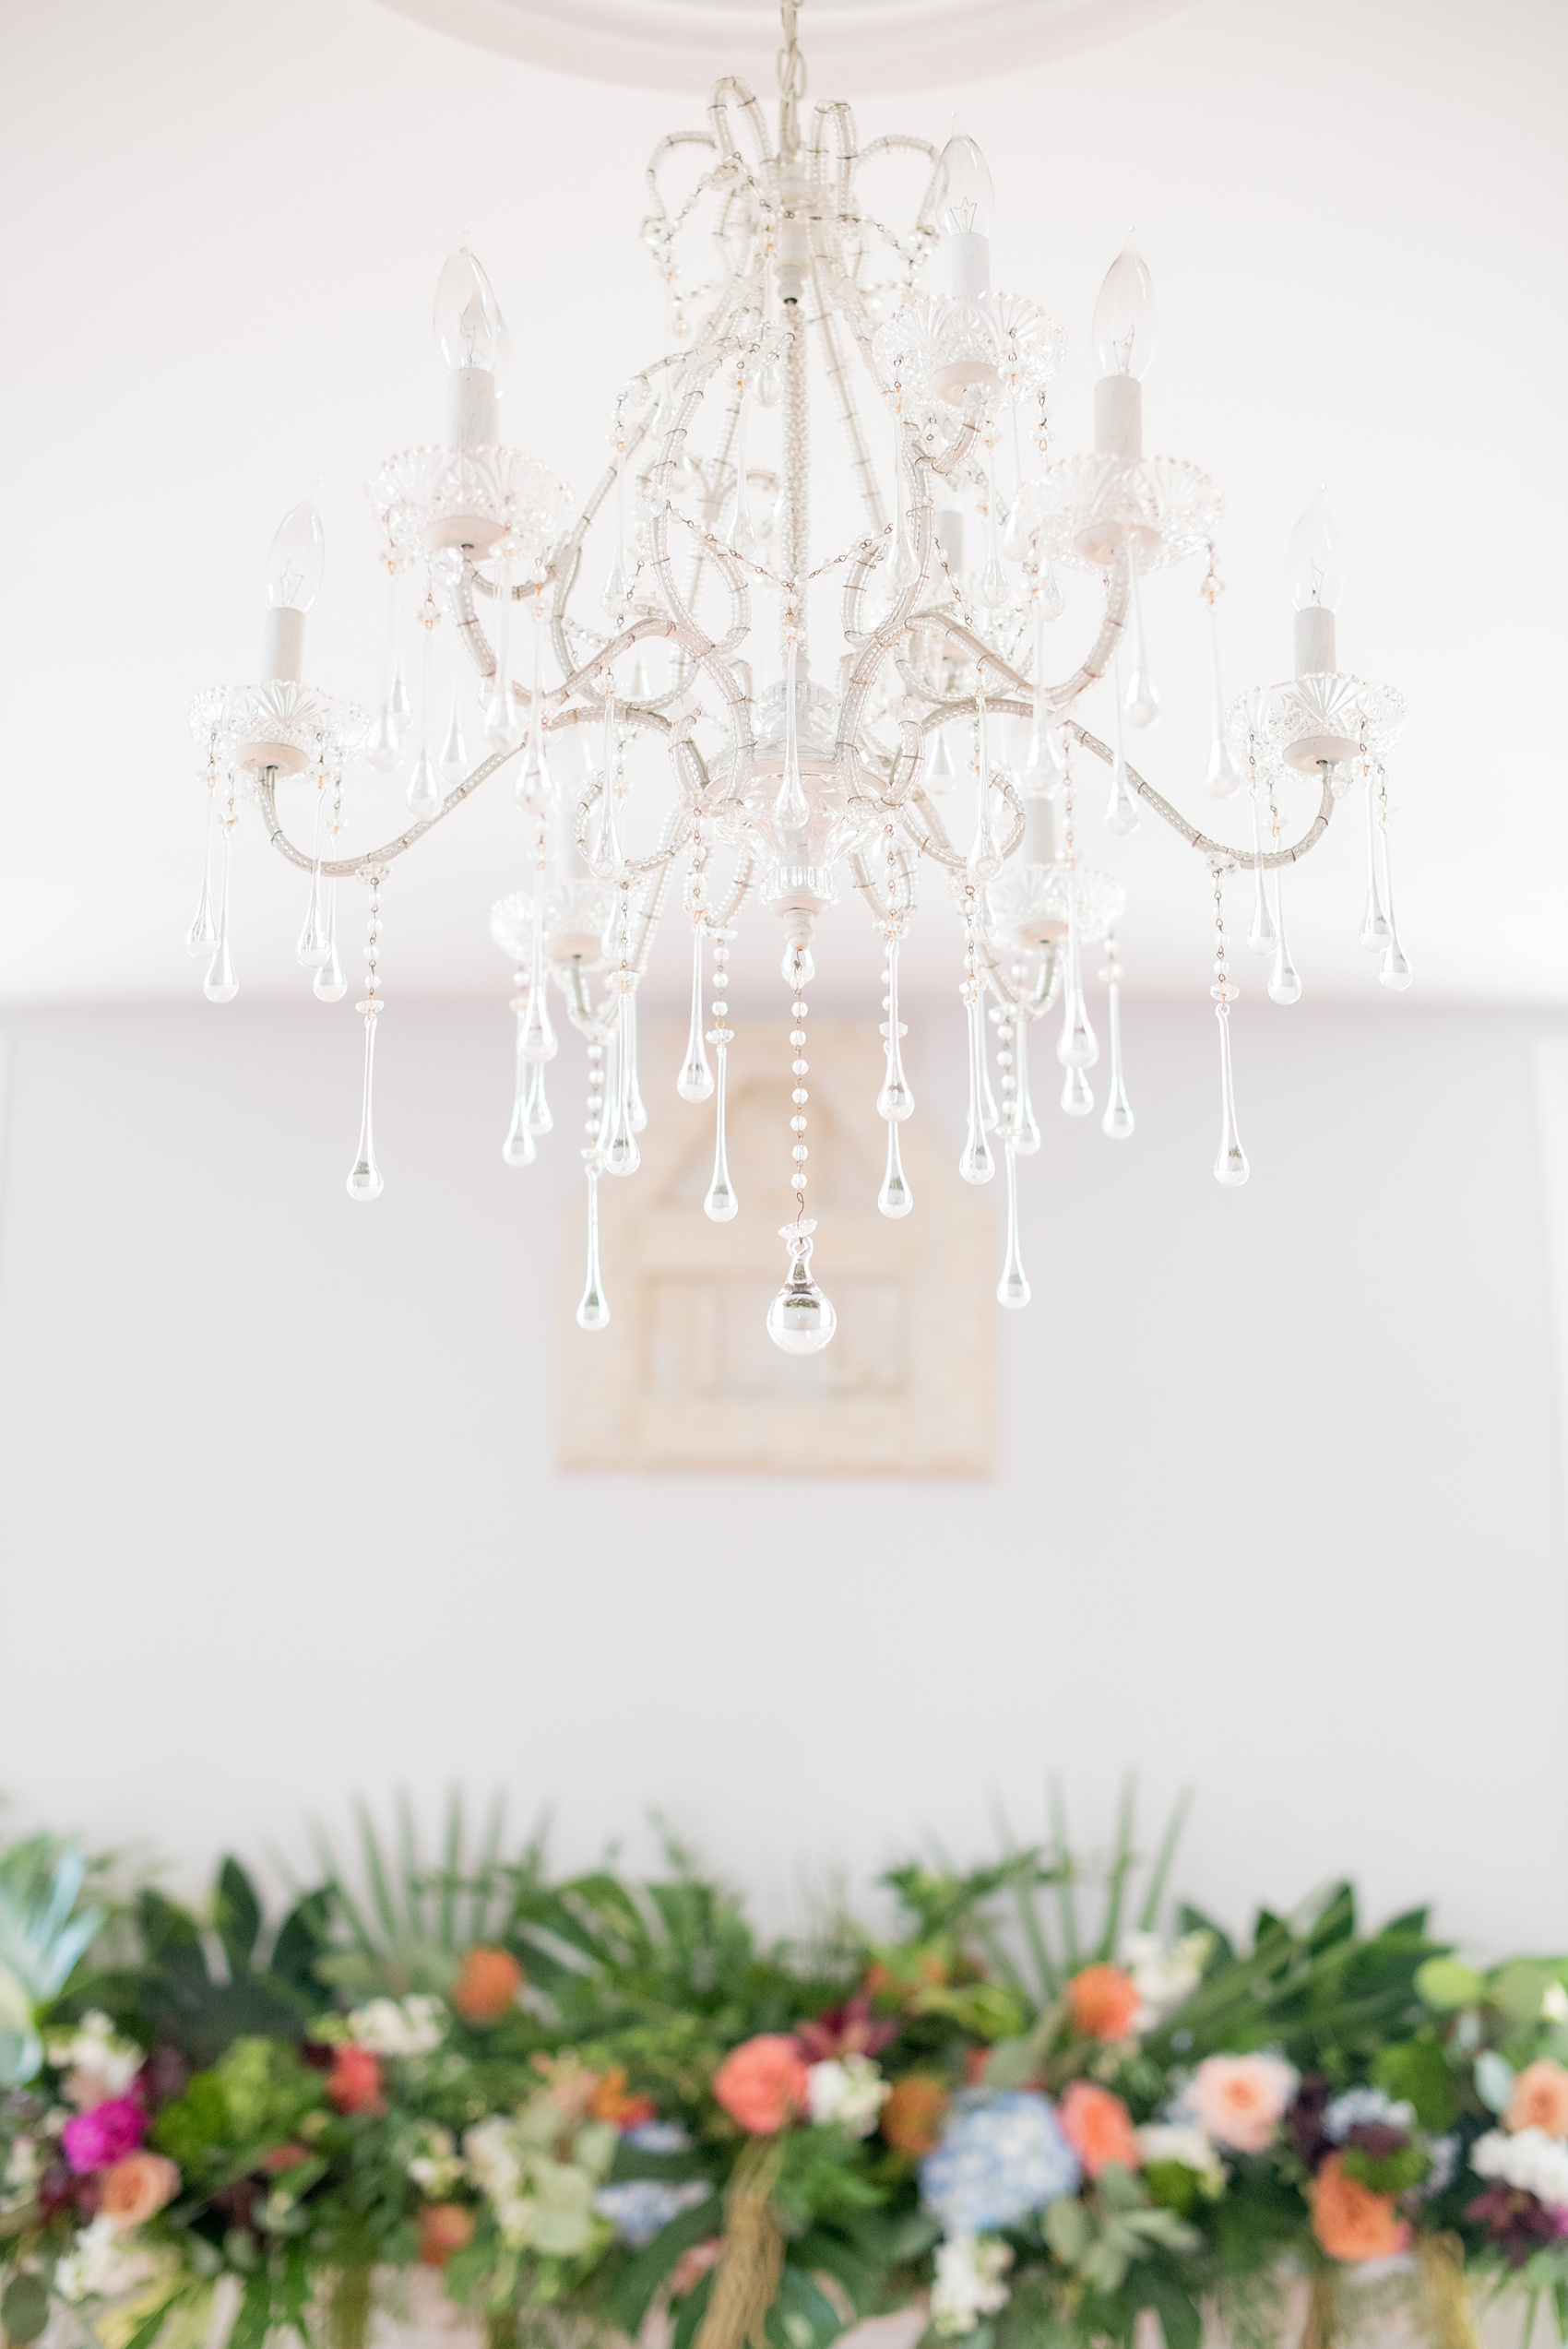 Mikkel Paige Photography pictures of a wedding at Leslie-Alford Mim's House in North Carolina for a Mad Dash Weddings event. Photo of the glass chandelier hanging in the ceremony space.